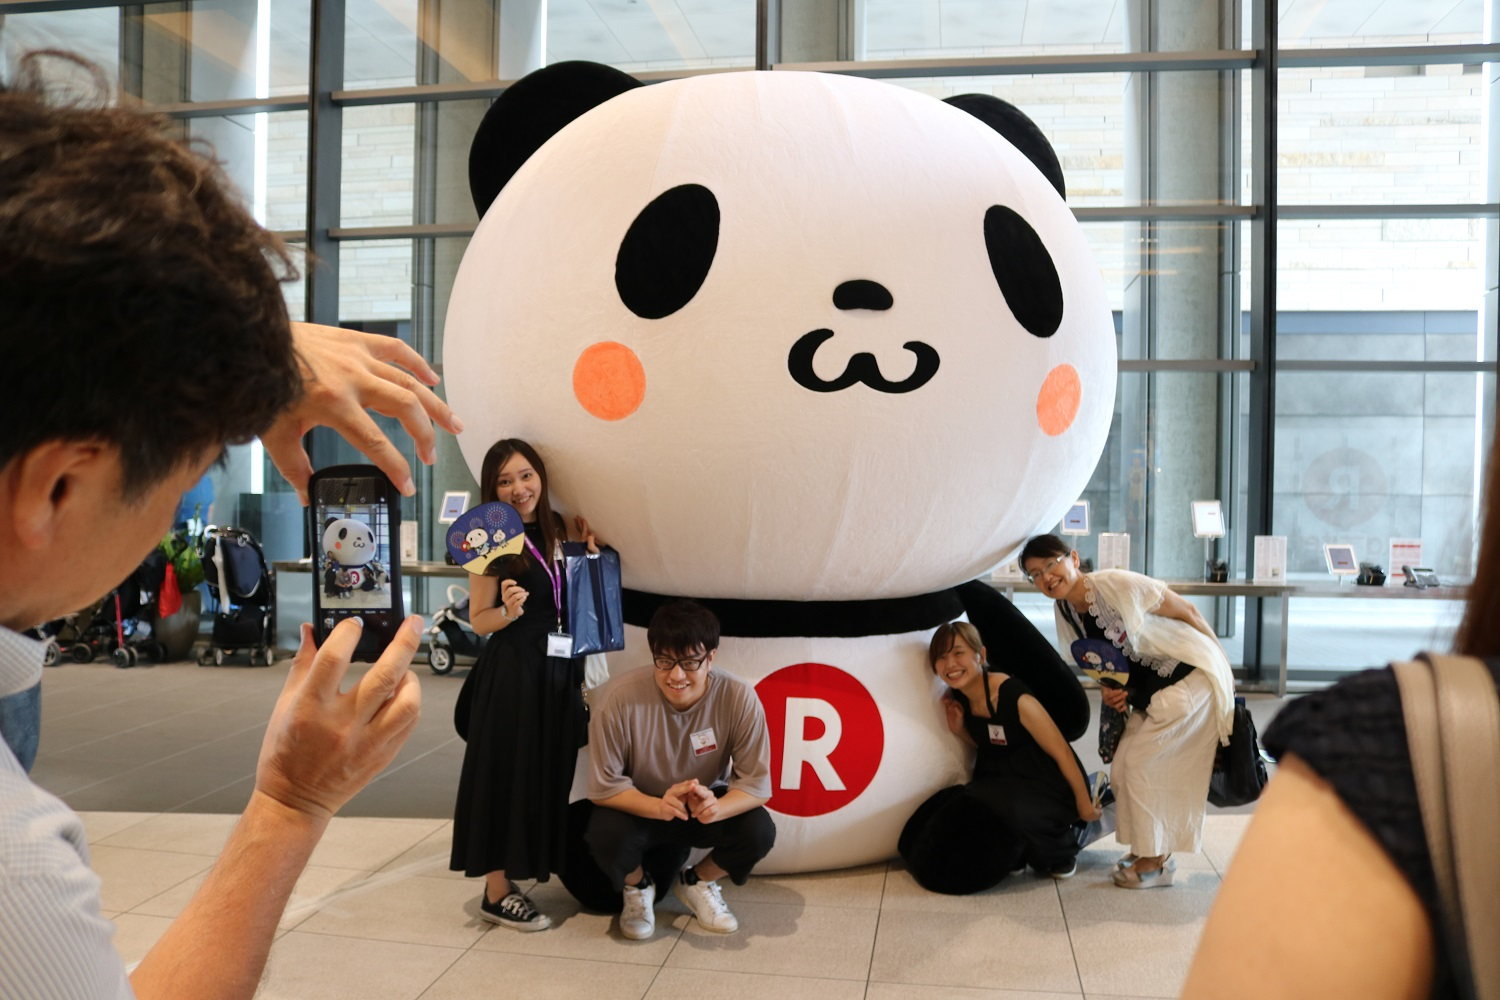 The halls of Crimson House rang with laughter and excitement as hundreds of children roamed the offices of Rakuten's Tokyo headquarters for Family Day.